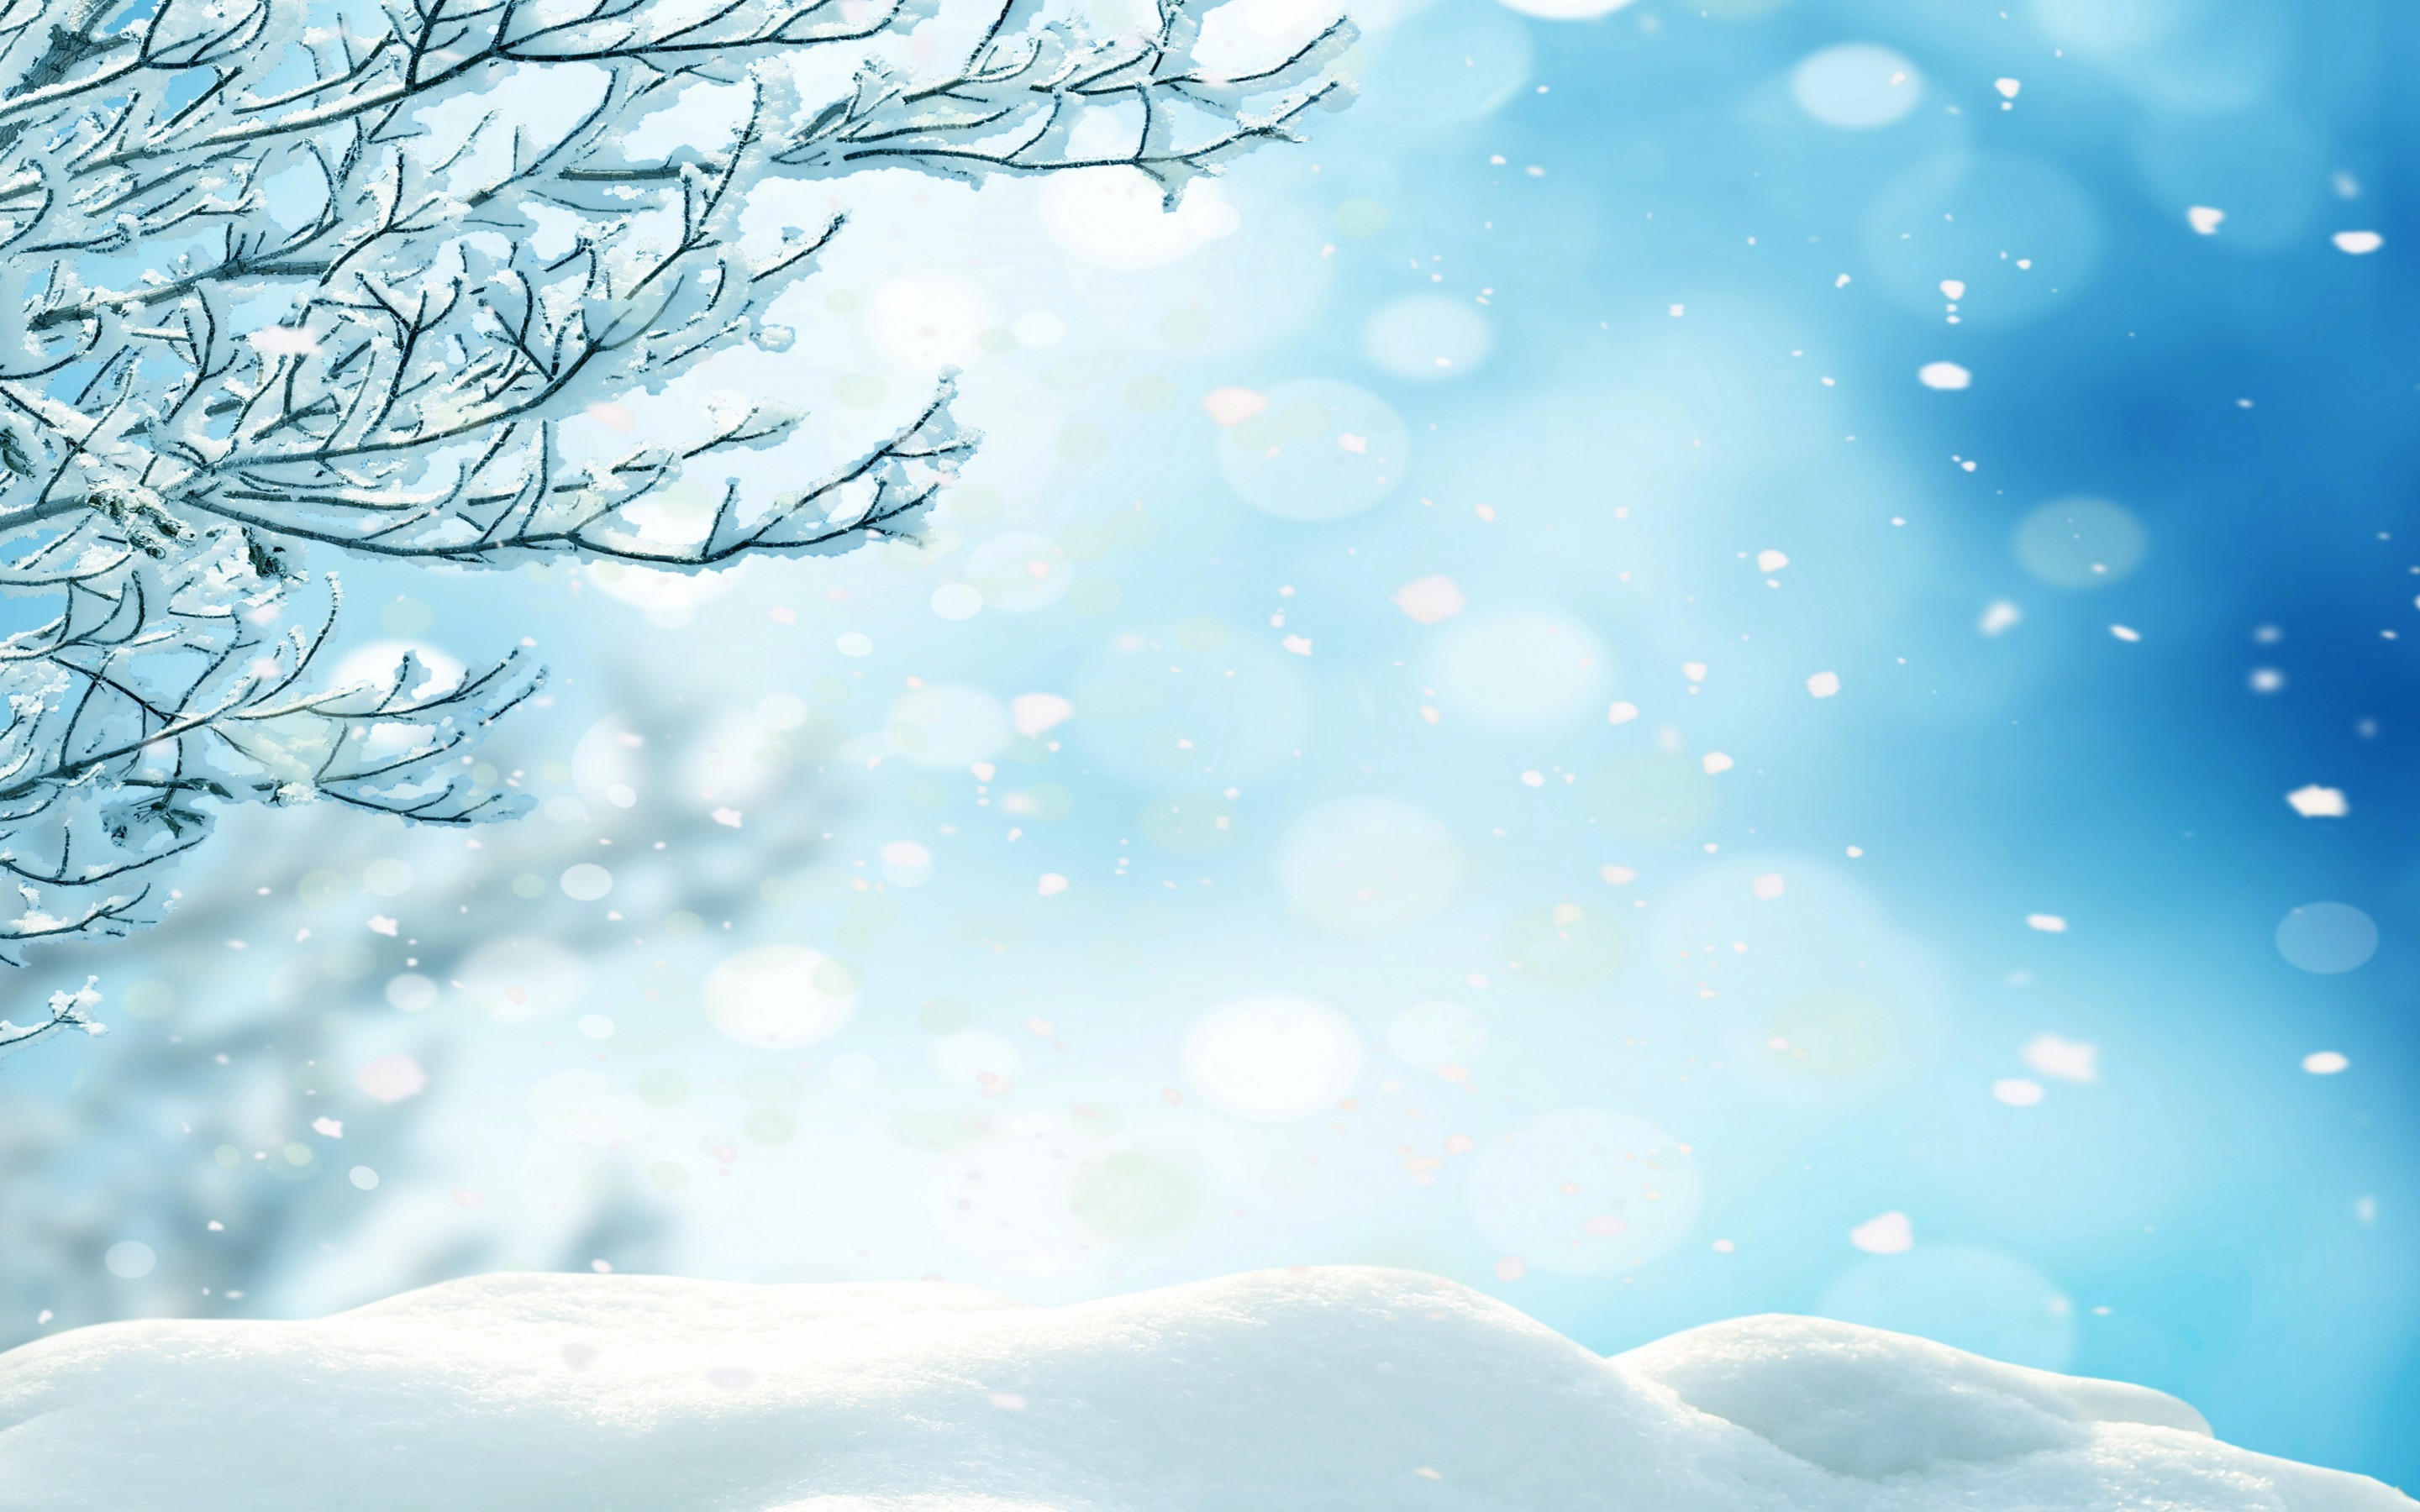 Disney 3d Wallpapers Free Winter Snowflakes Wallpaper 42 Images